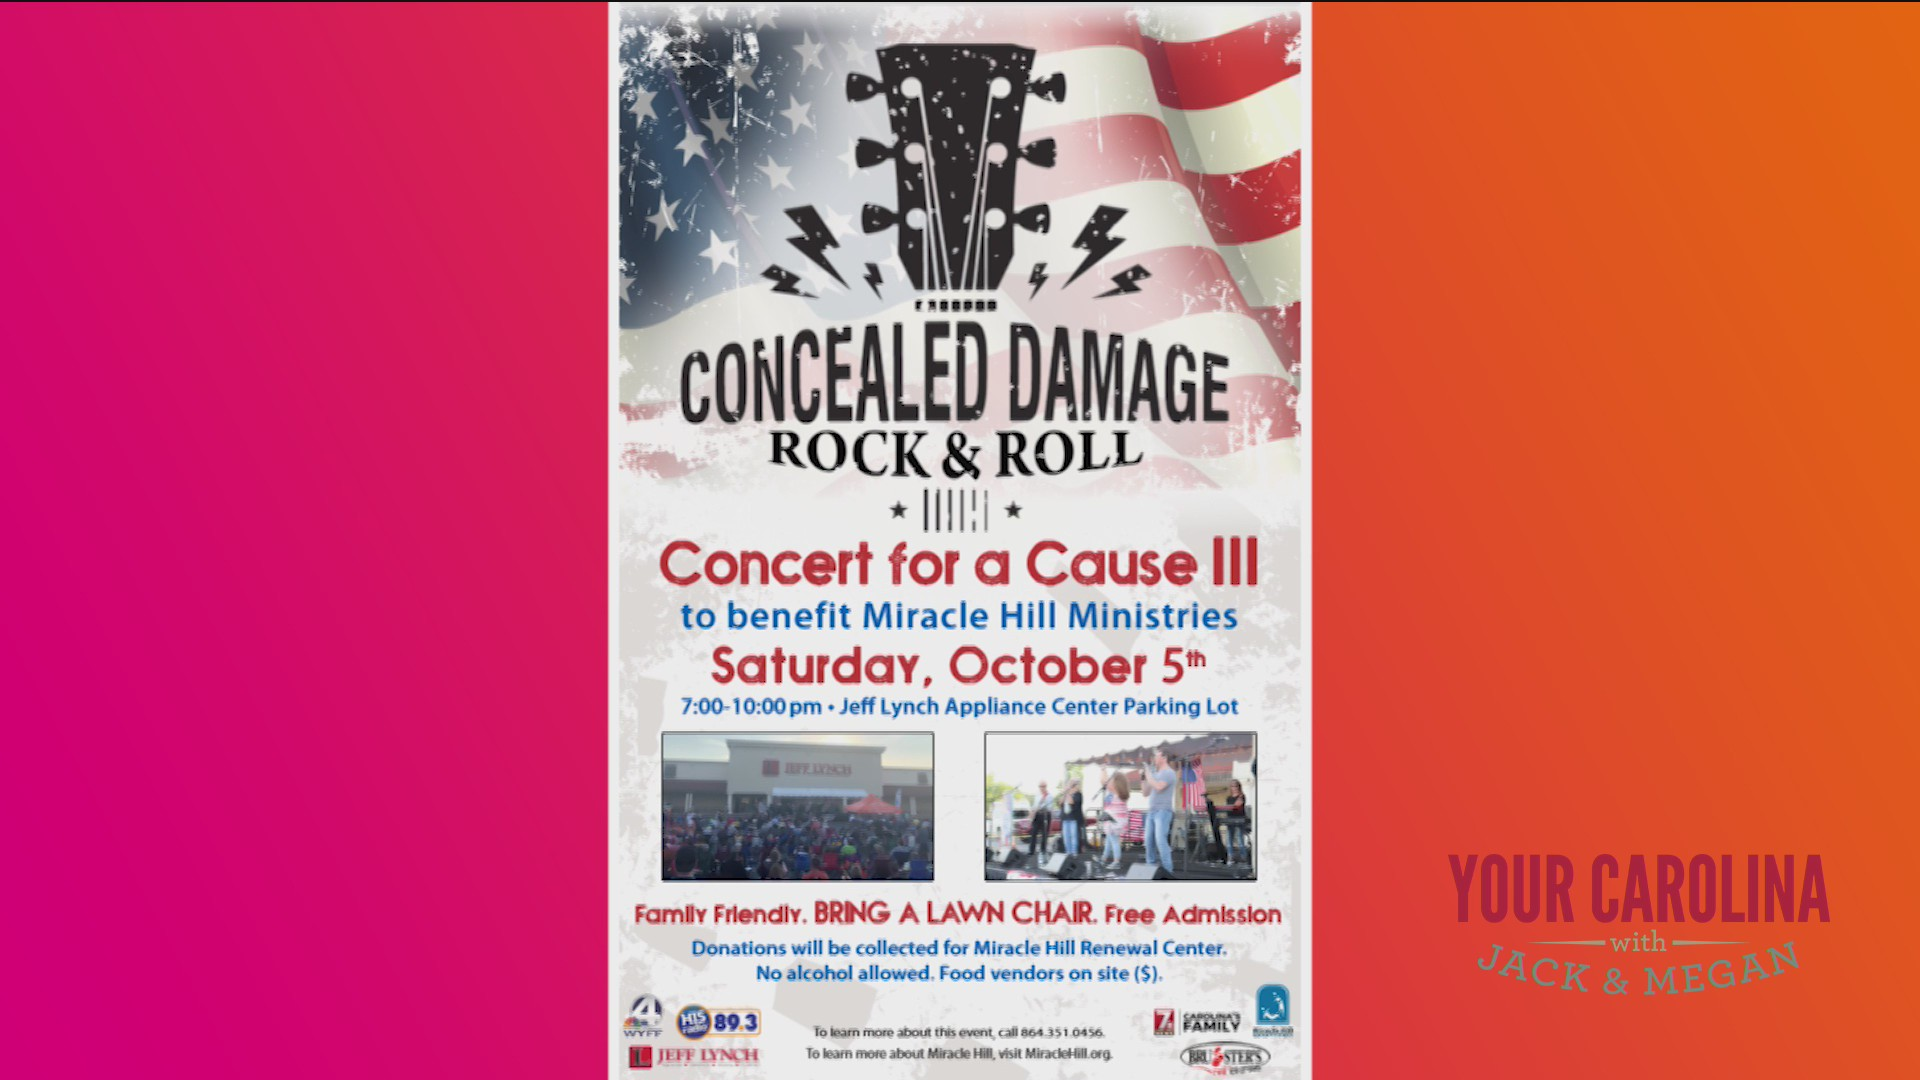 Concert for a Cause Fundraiser